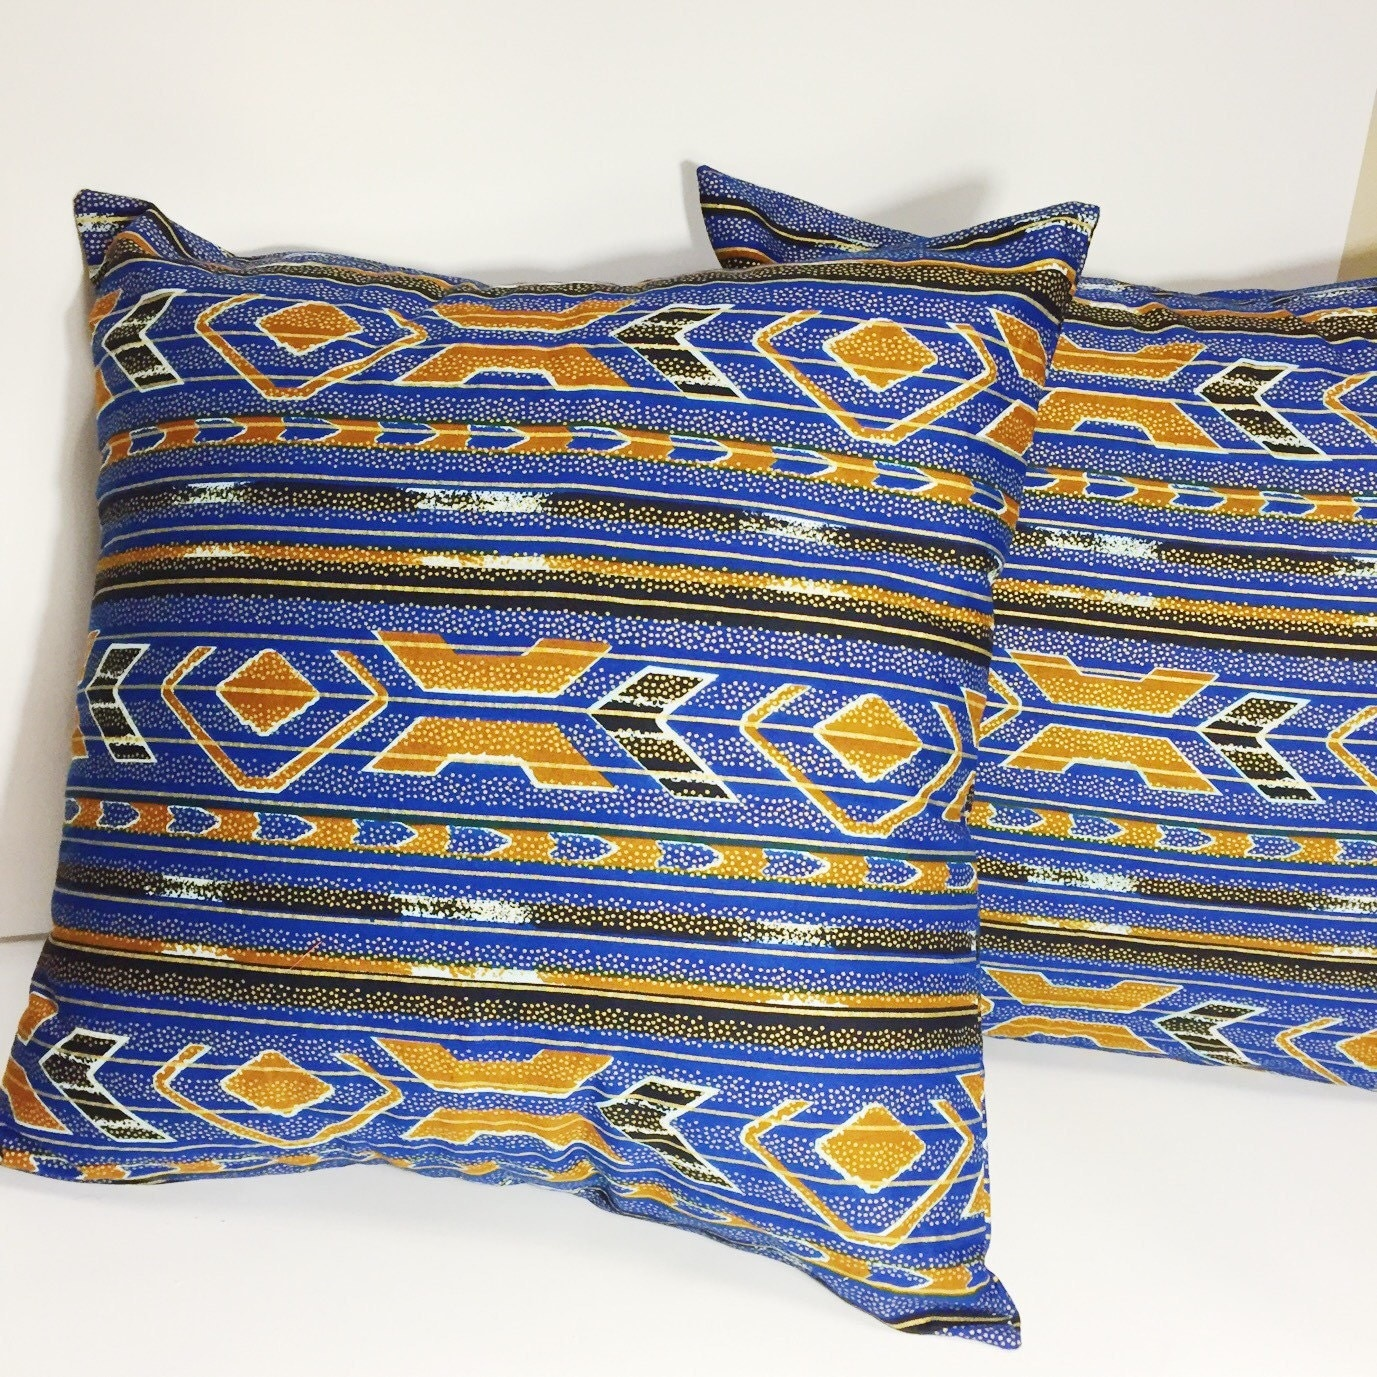 Throw Pillow Fabric Calculator : Blue and Gold Throw Pillow Cover // Black and Blue Decorative Pillow // African Print Accent ...